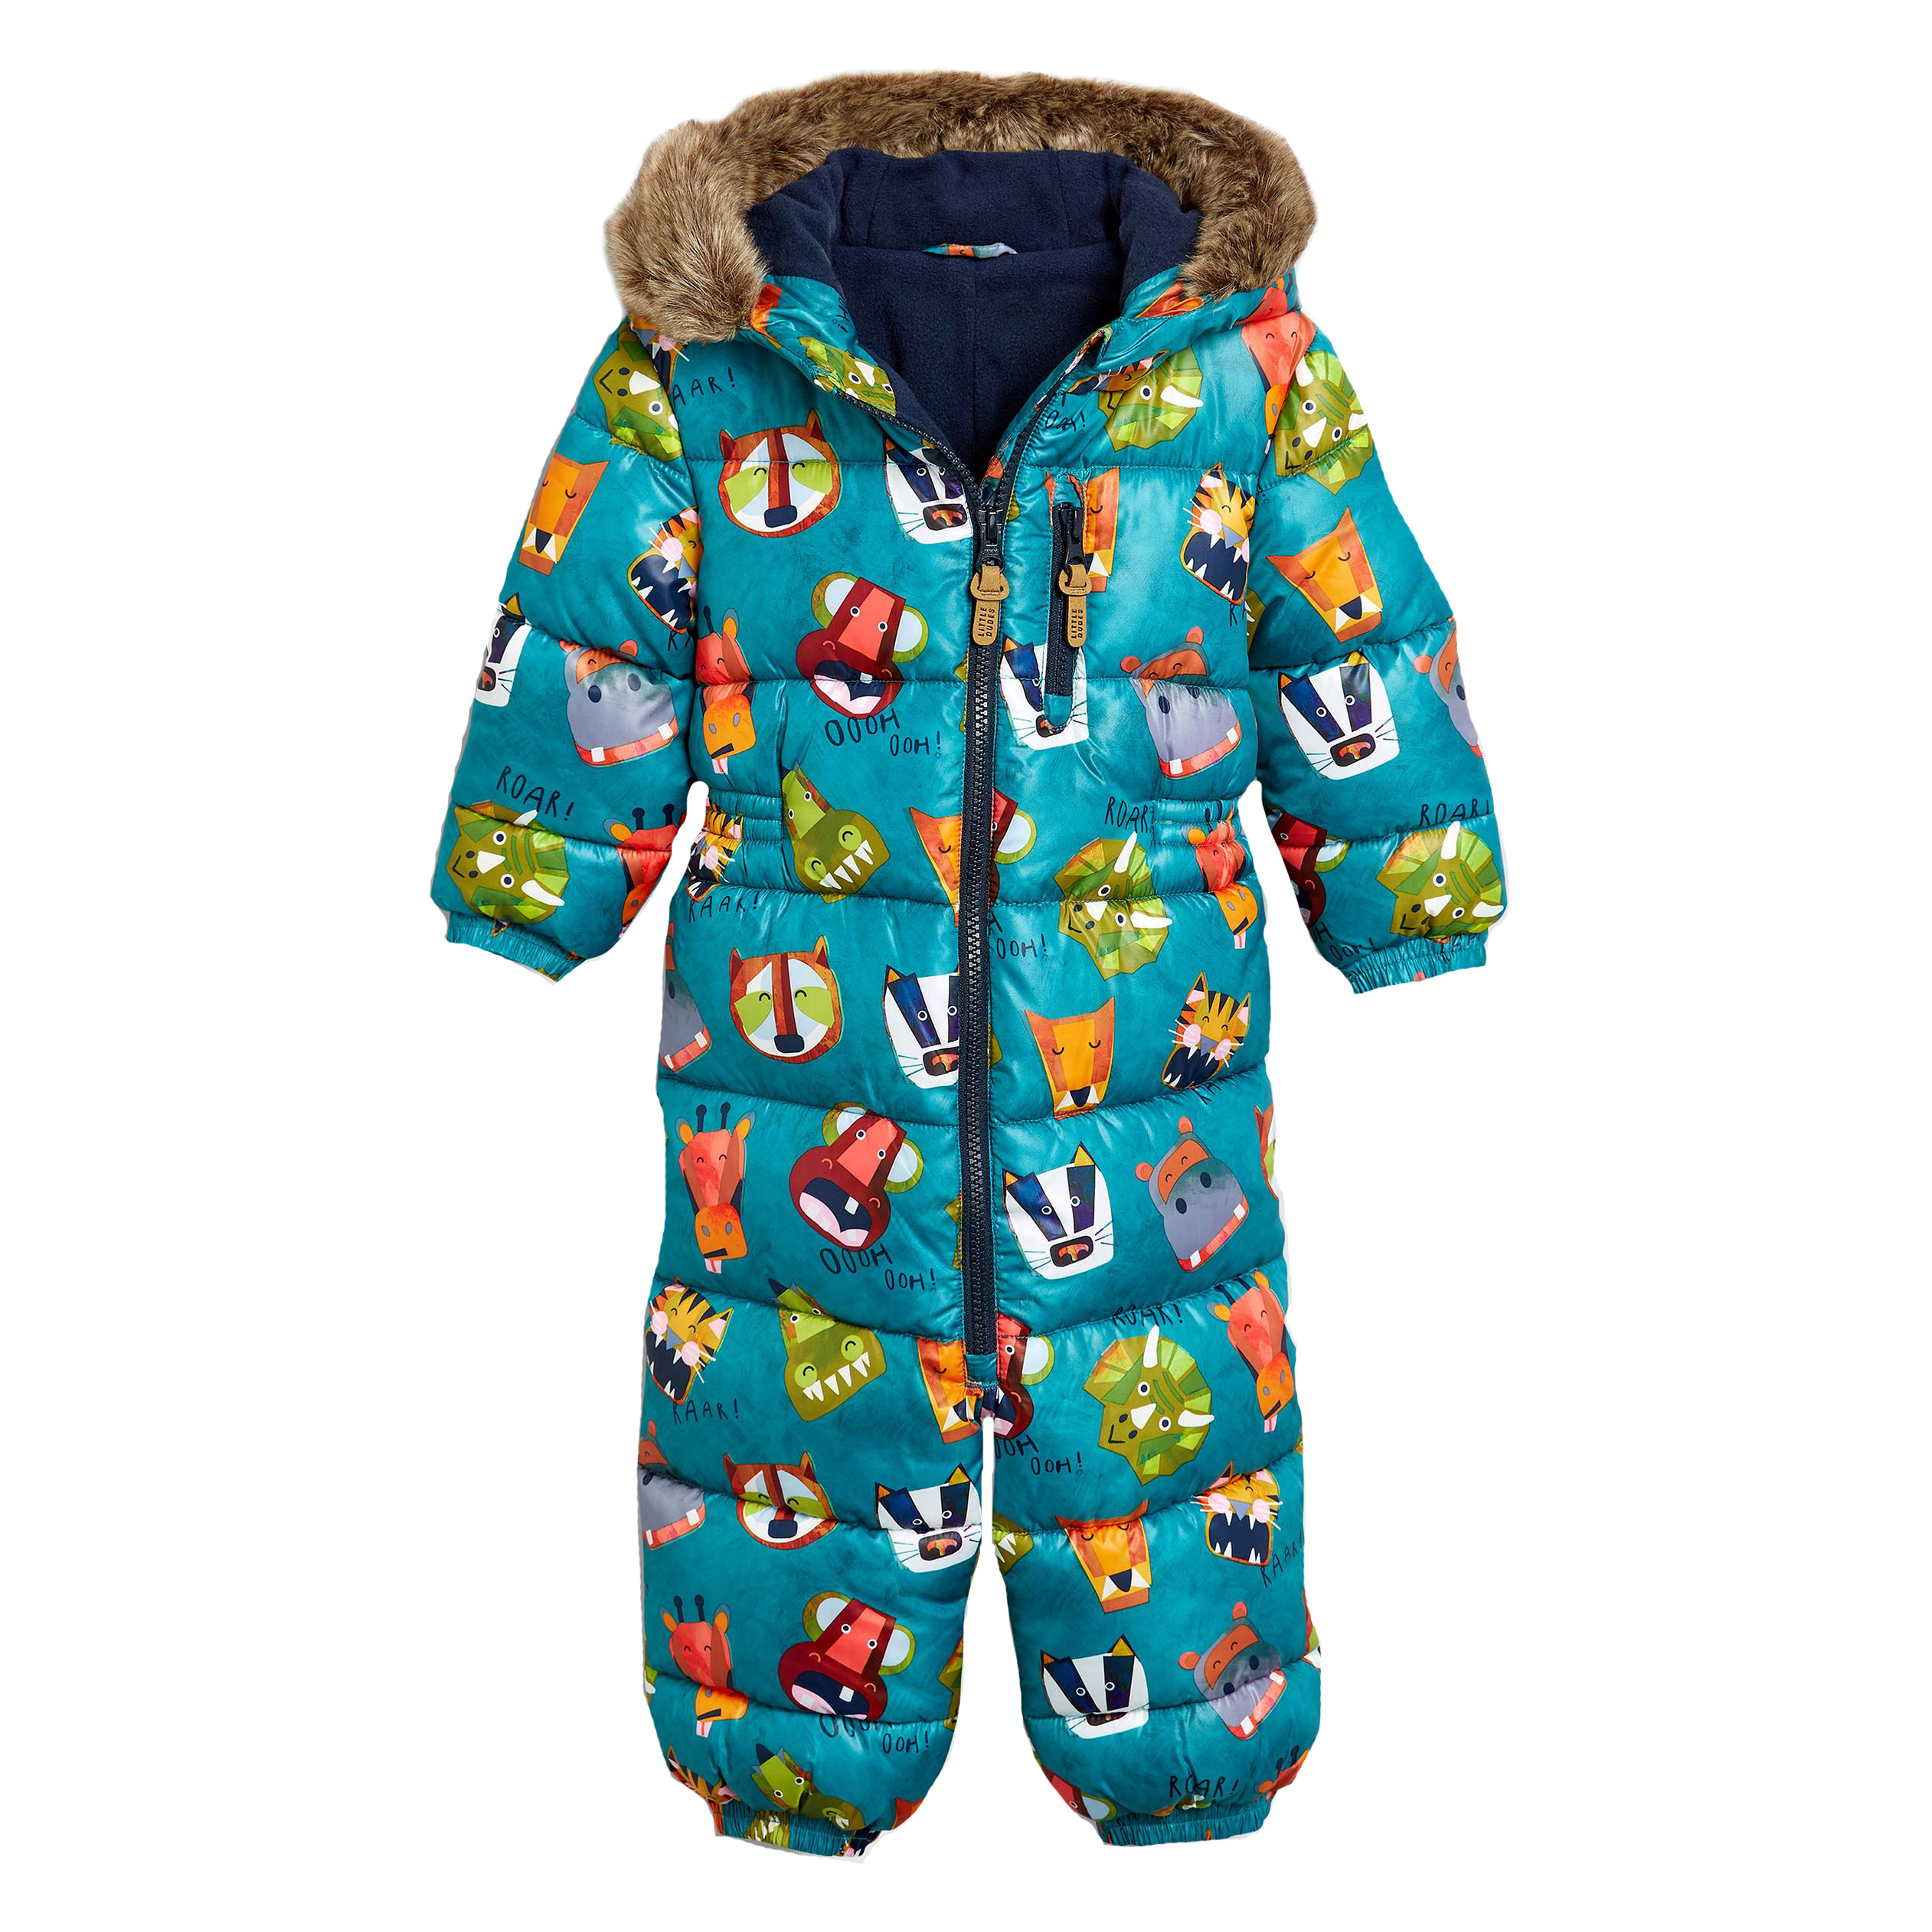 Next Teal Animal All-Over Print Snowsuit